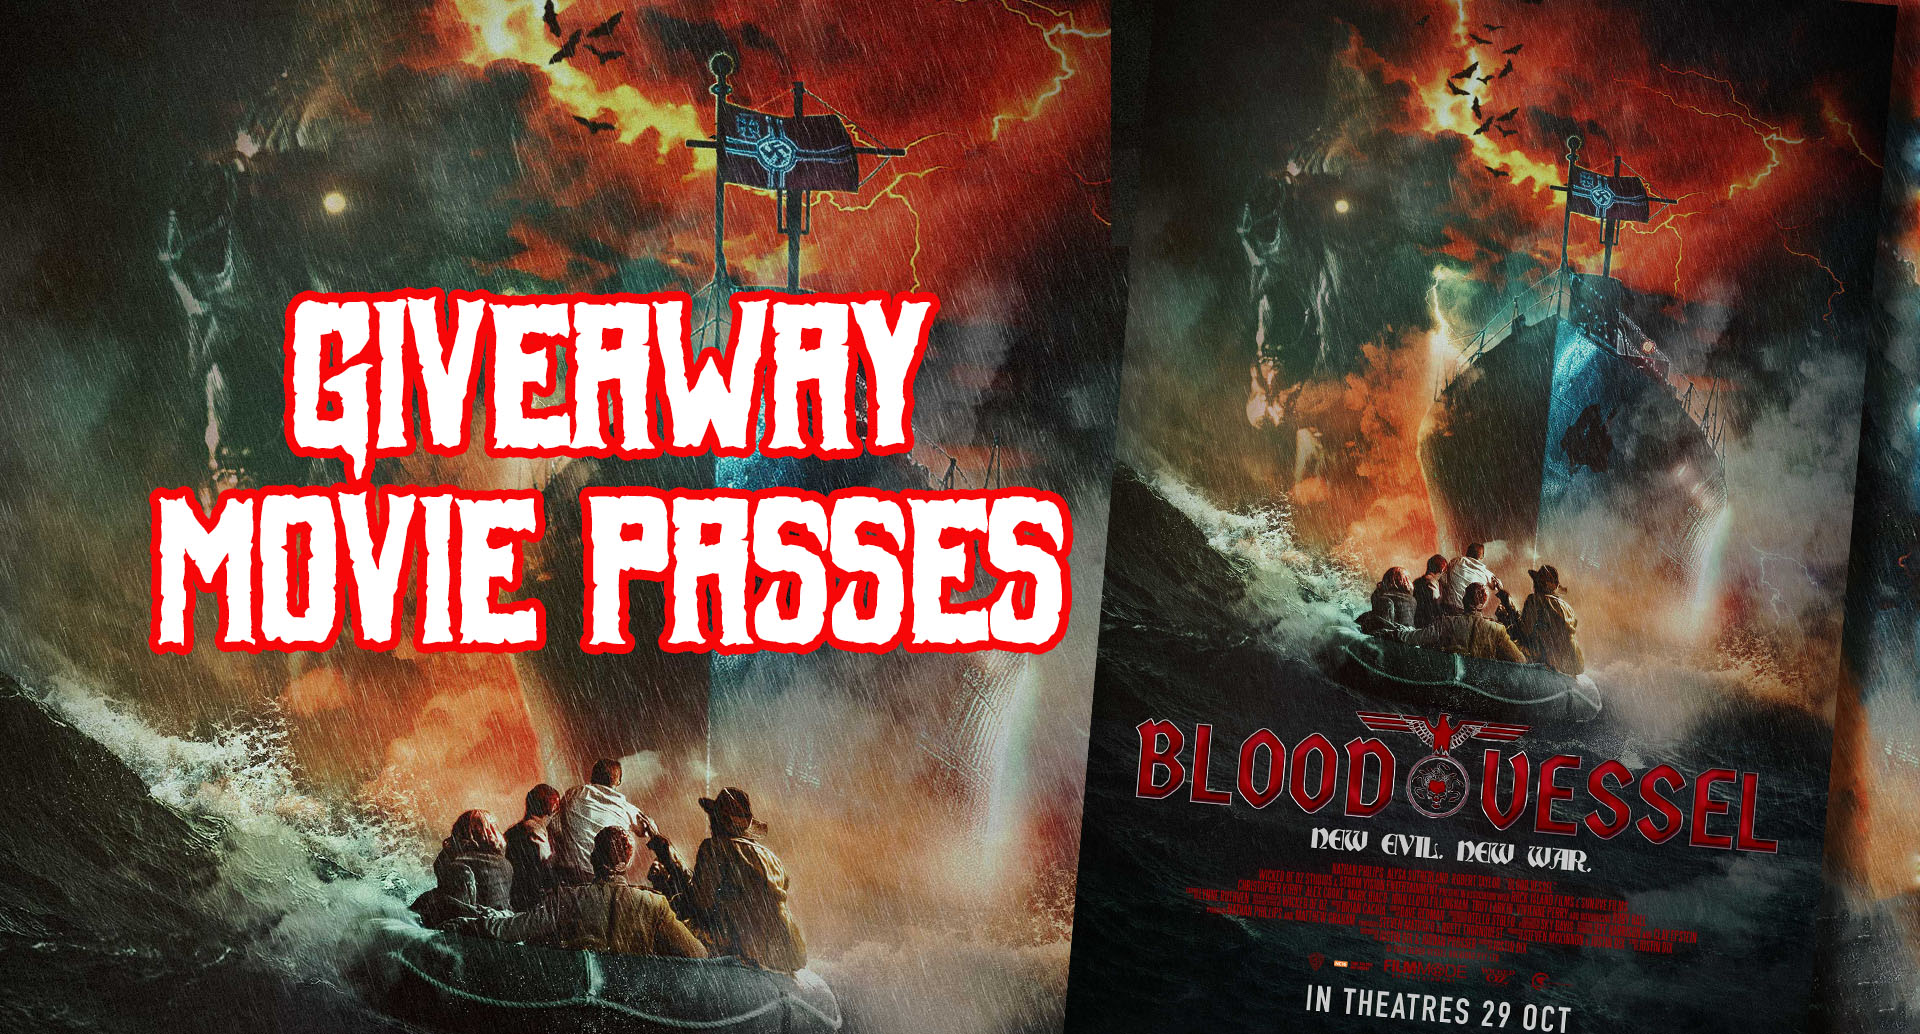 [CLOSED] GIVEAWAY MOVIE PASSES: BLOOD VESSEL